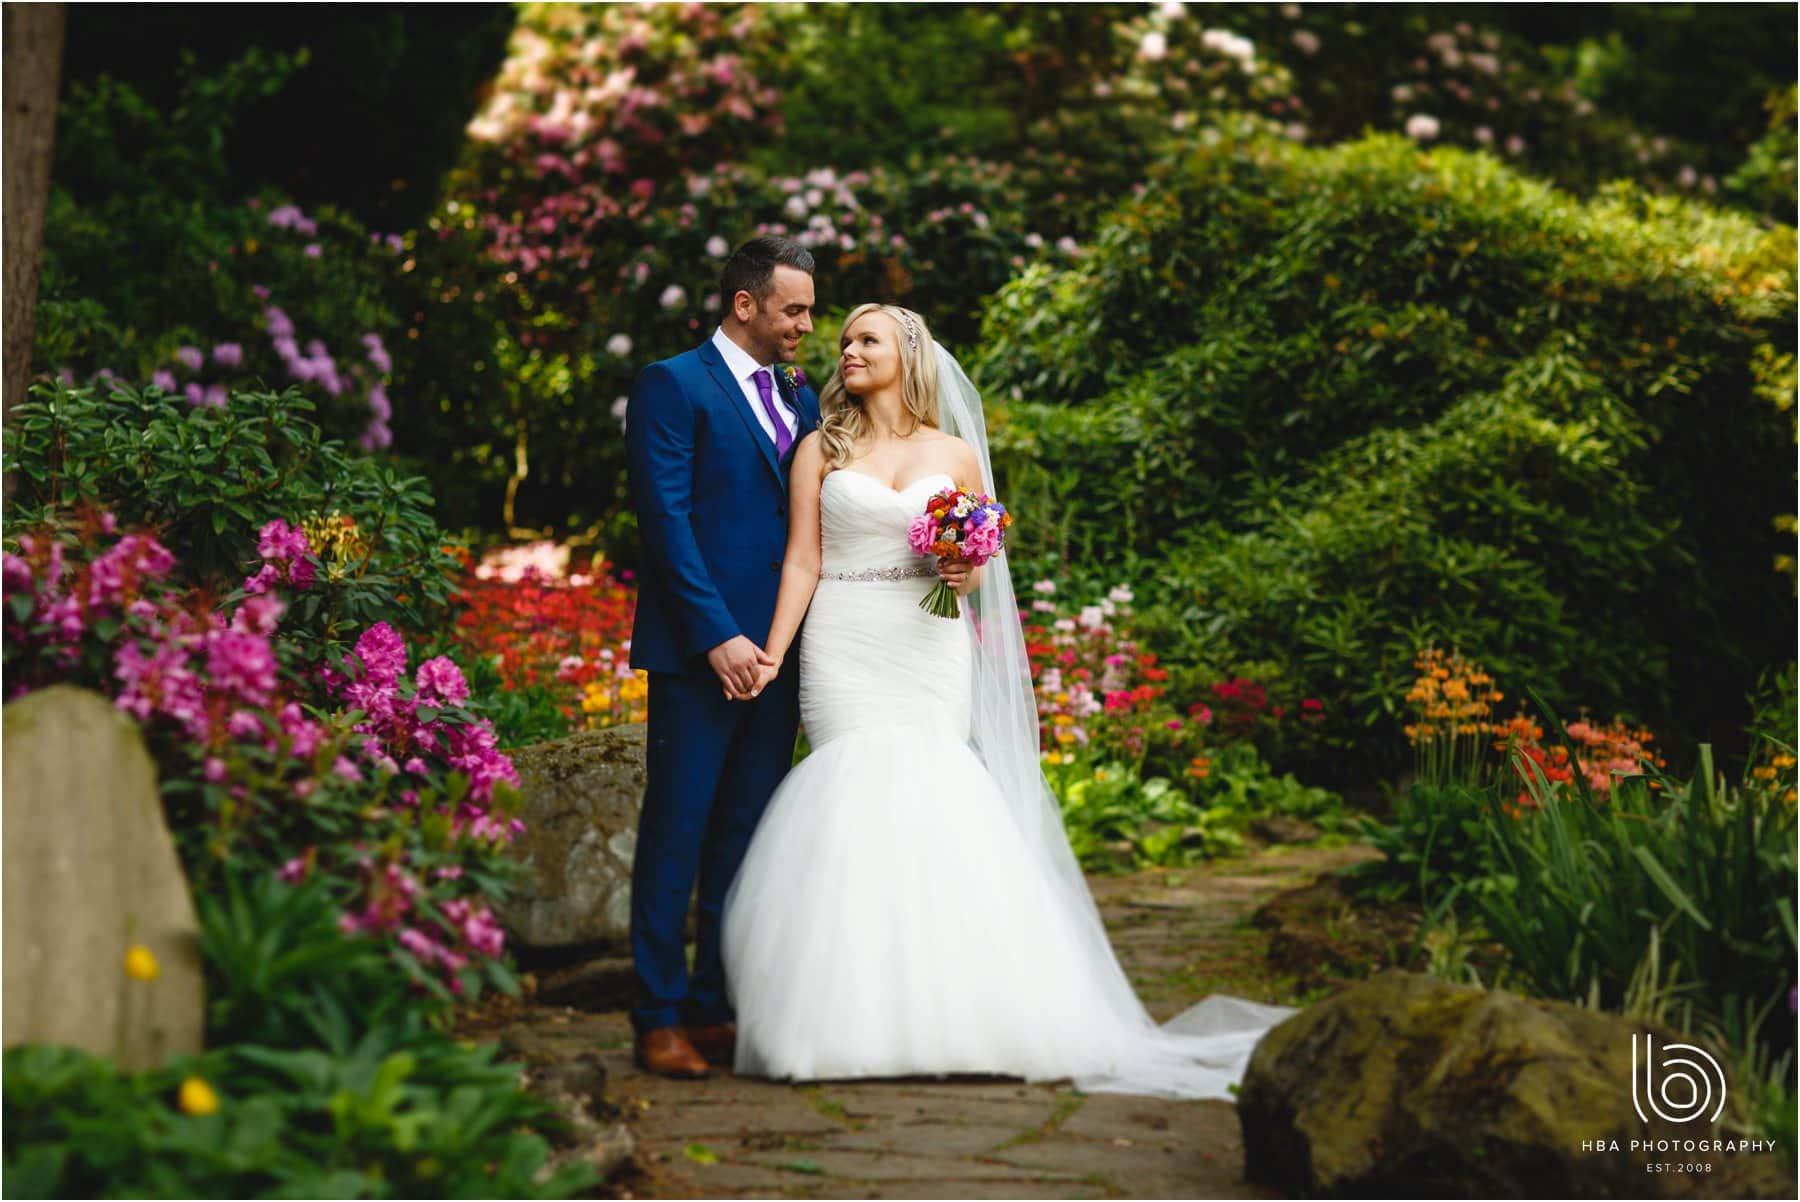 The bride & groom in the gardens